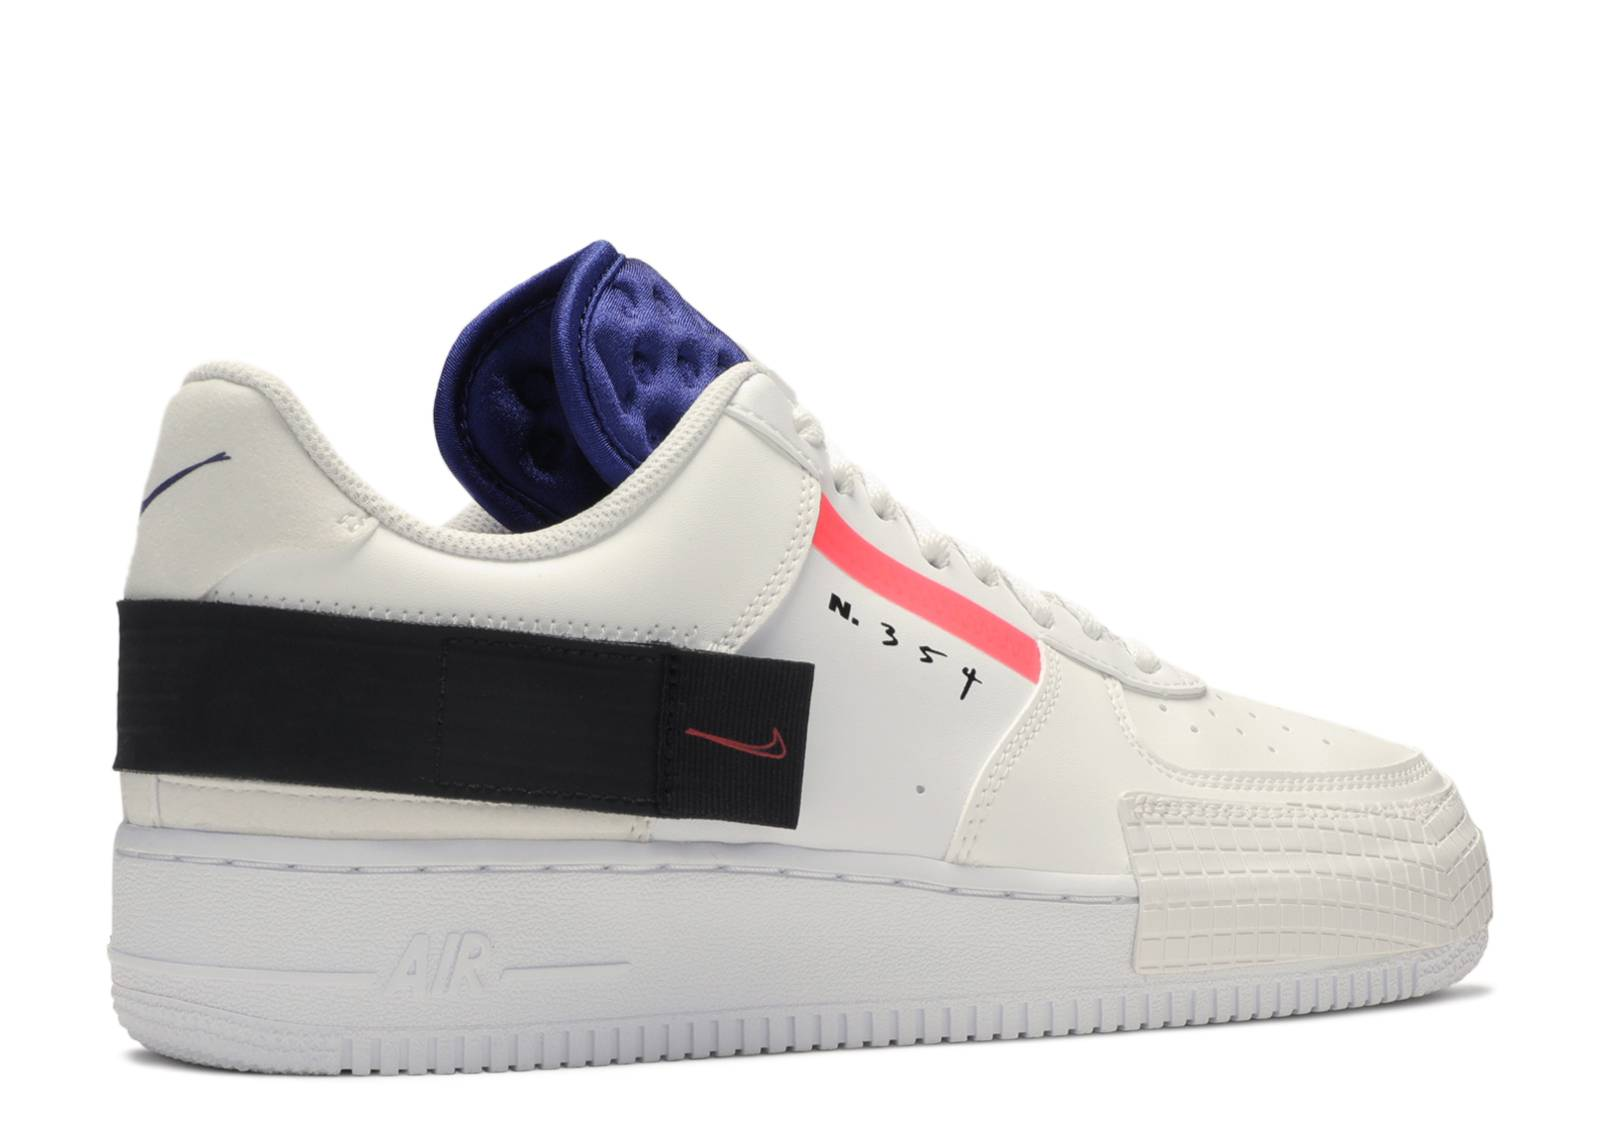 AIR FORCE 1 LOW DROP TYPE 'SUMMIT WHITE'